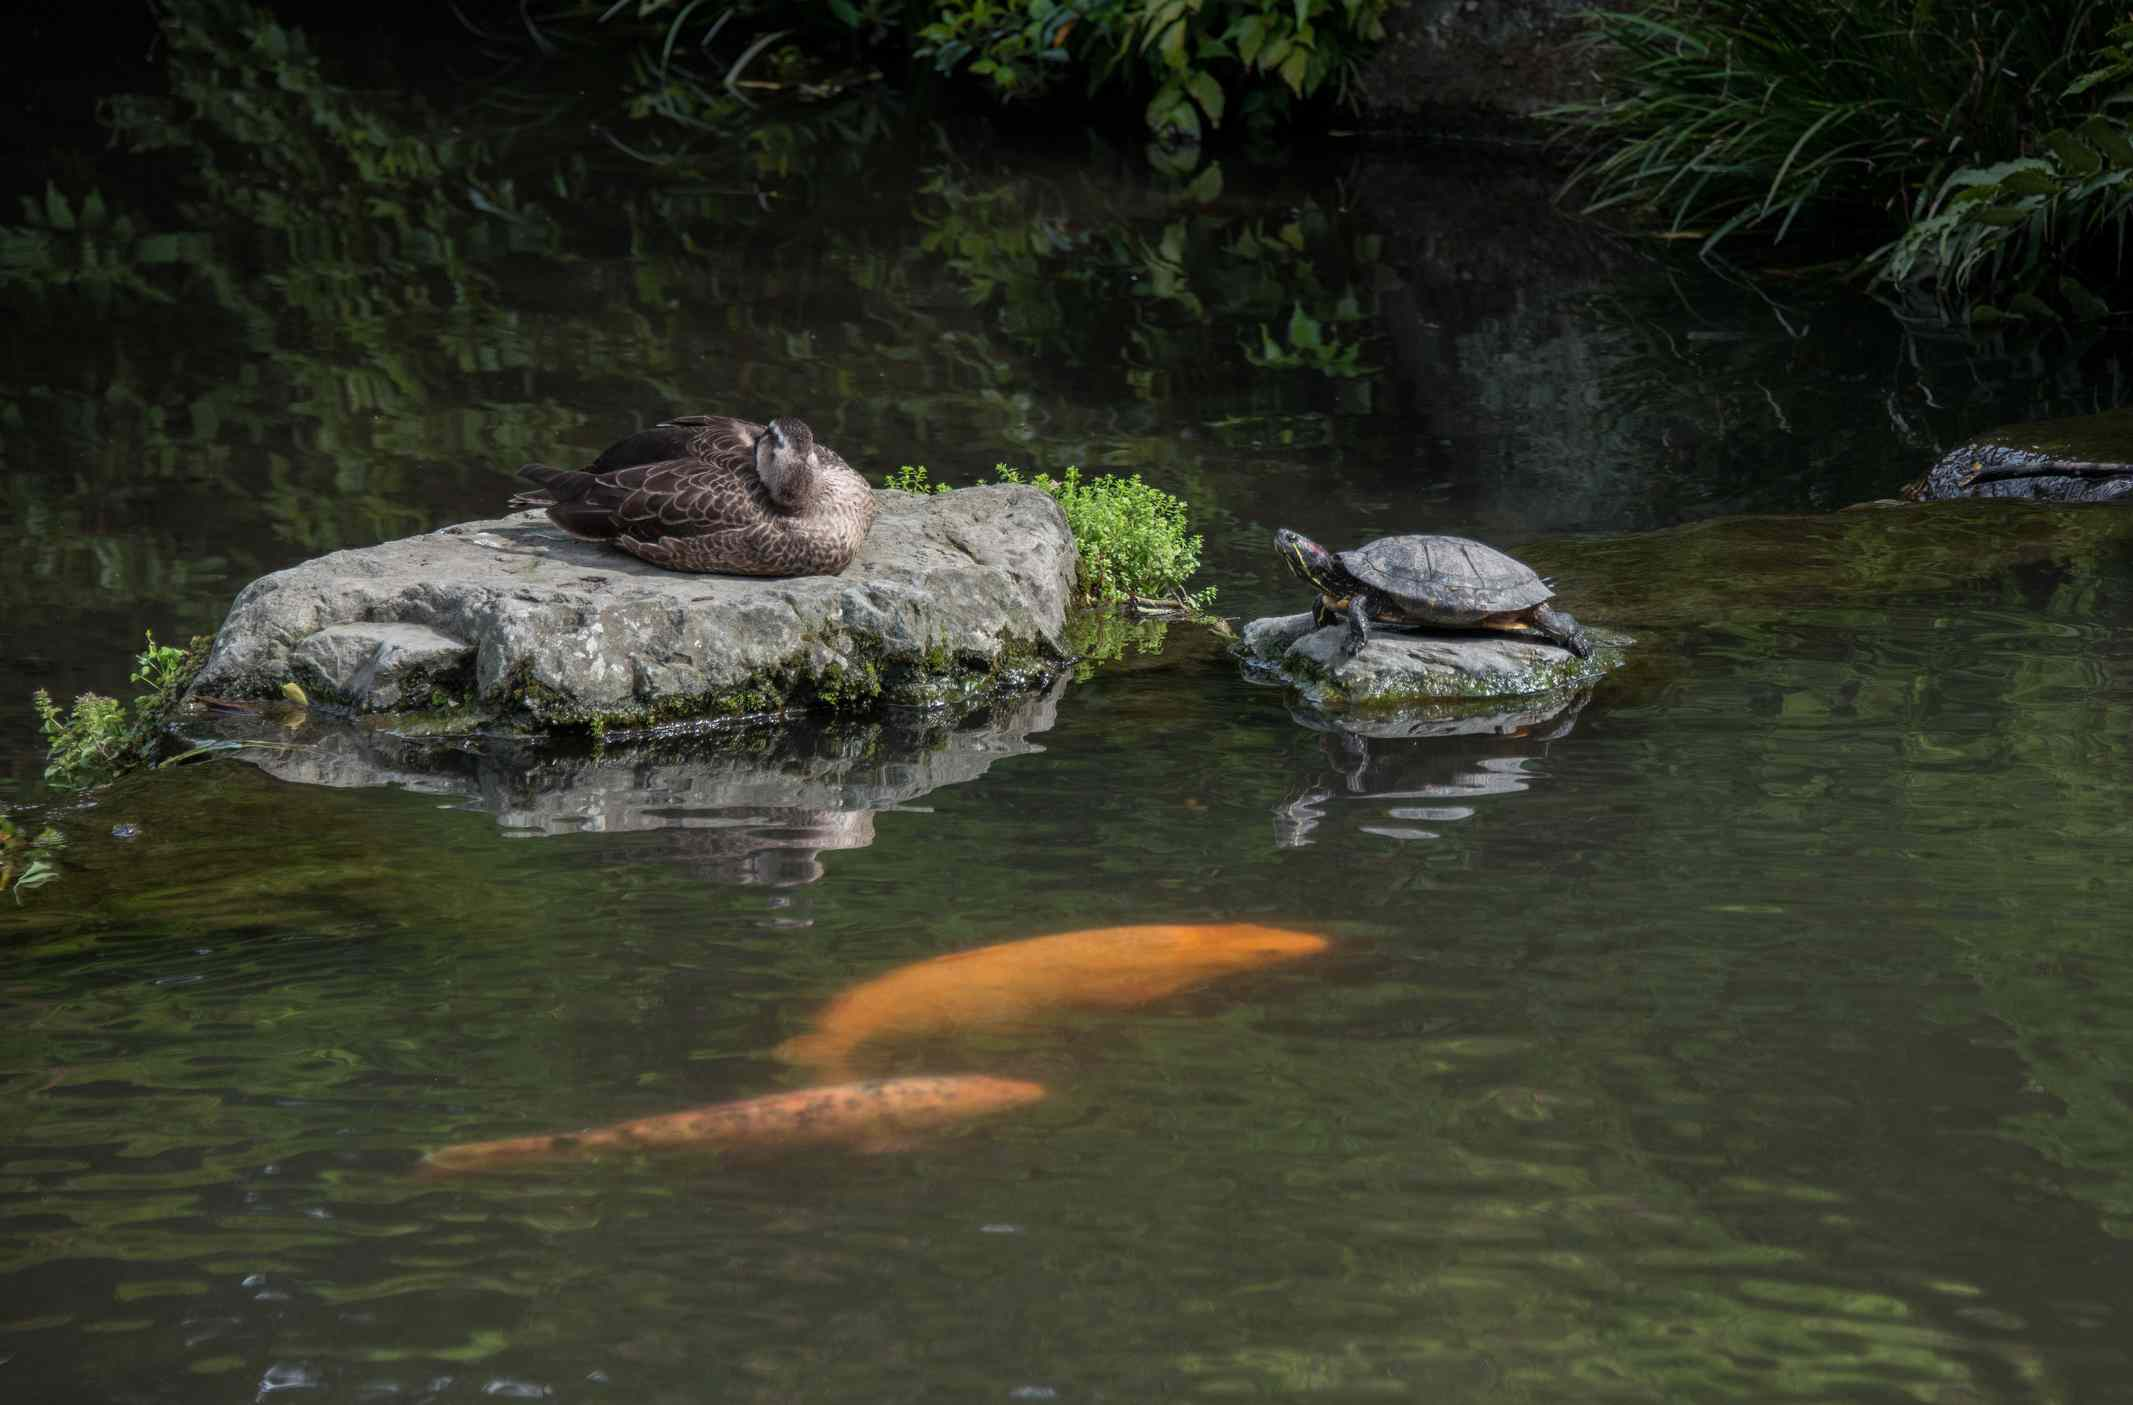 Rocks in the middle of a koi pond with a turtle and duck on top.